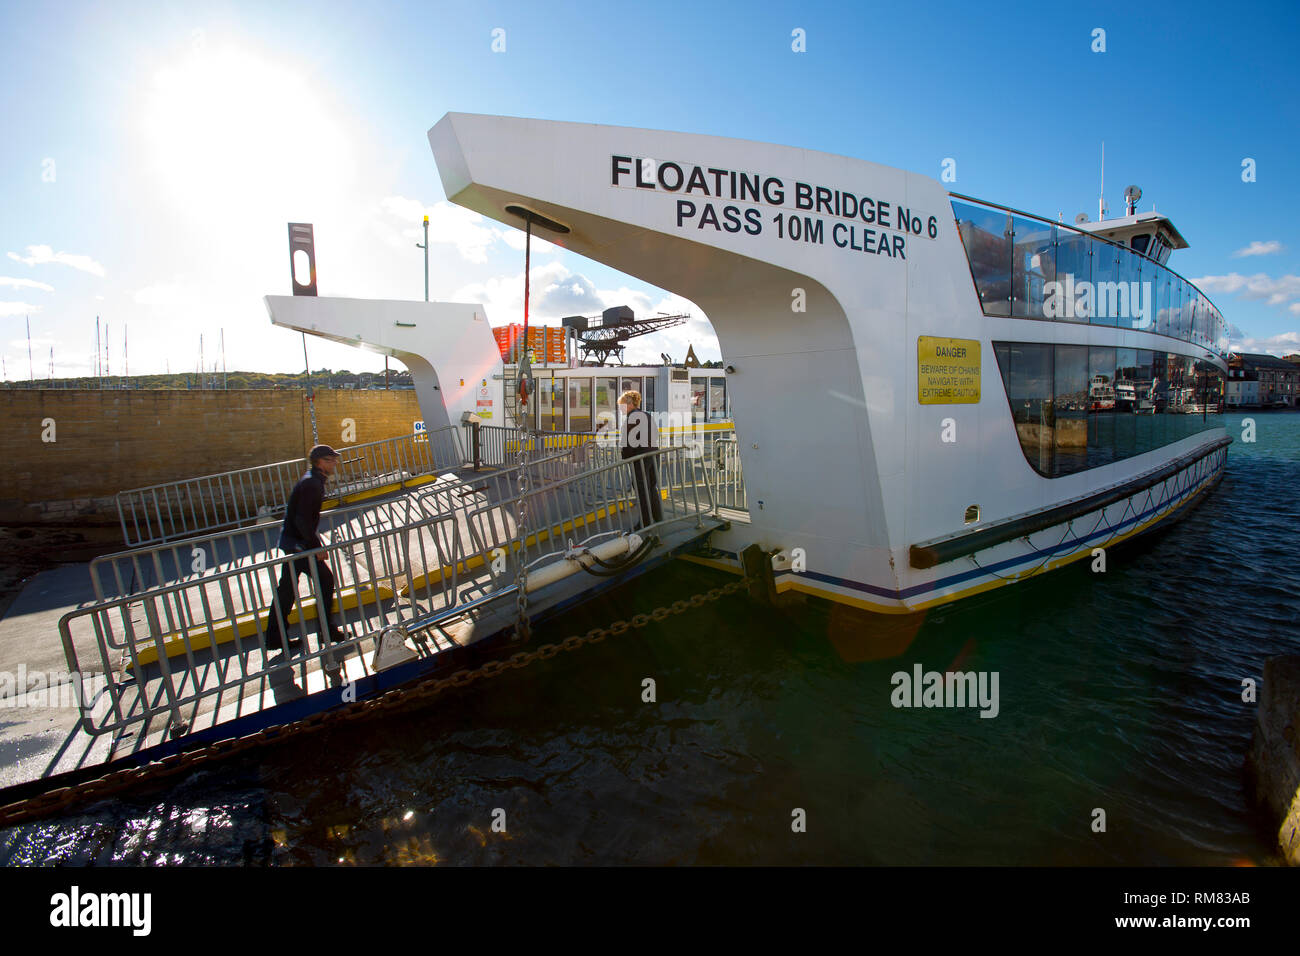 Controversial, Floating Bridge, East Cowes, Isle of Wight, England, UK, - Stock Image